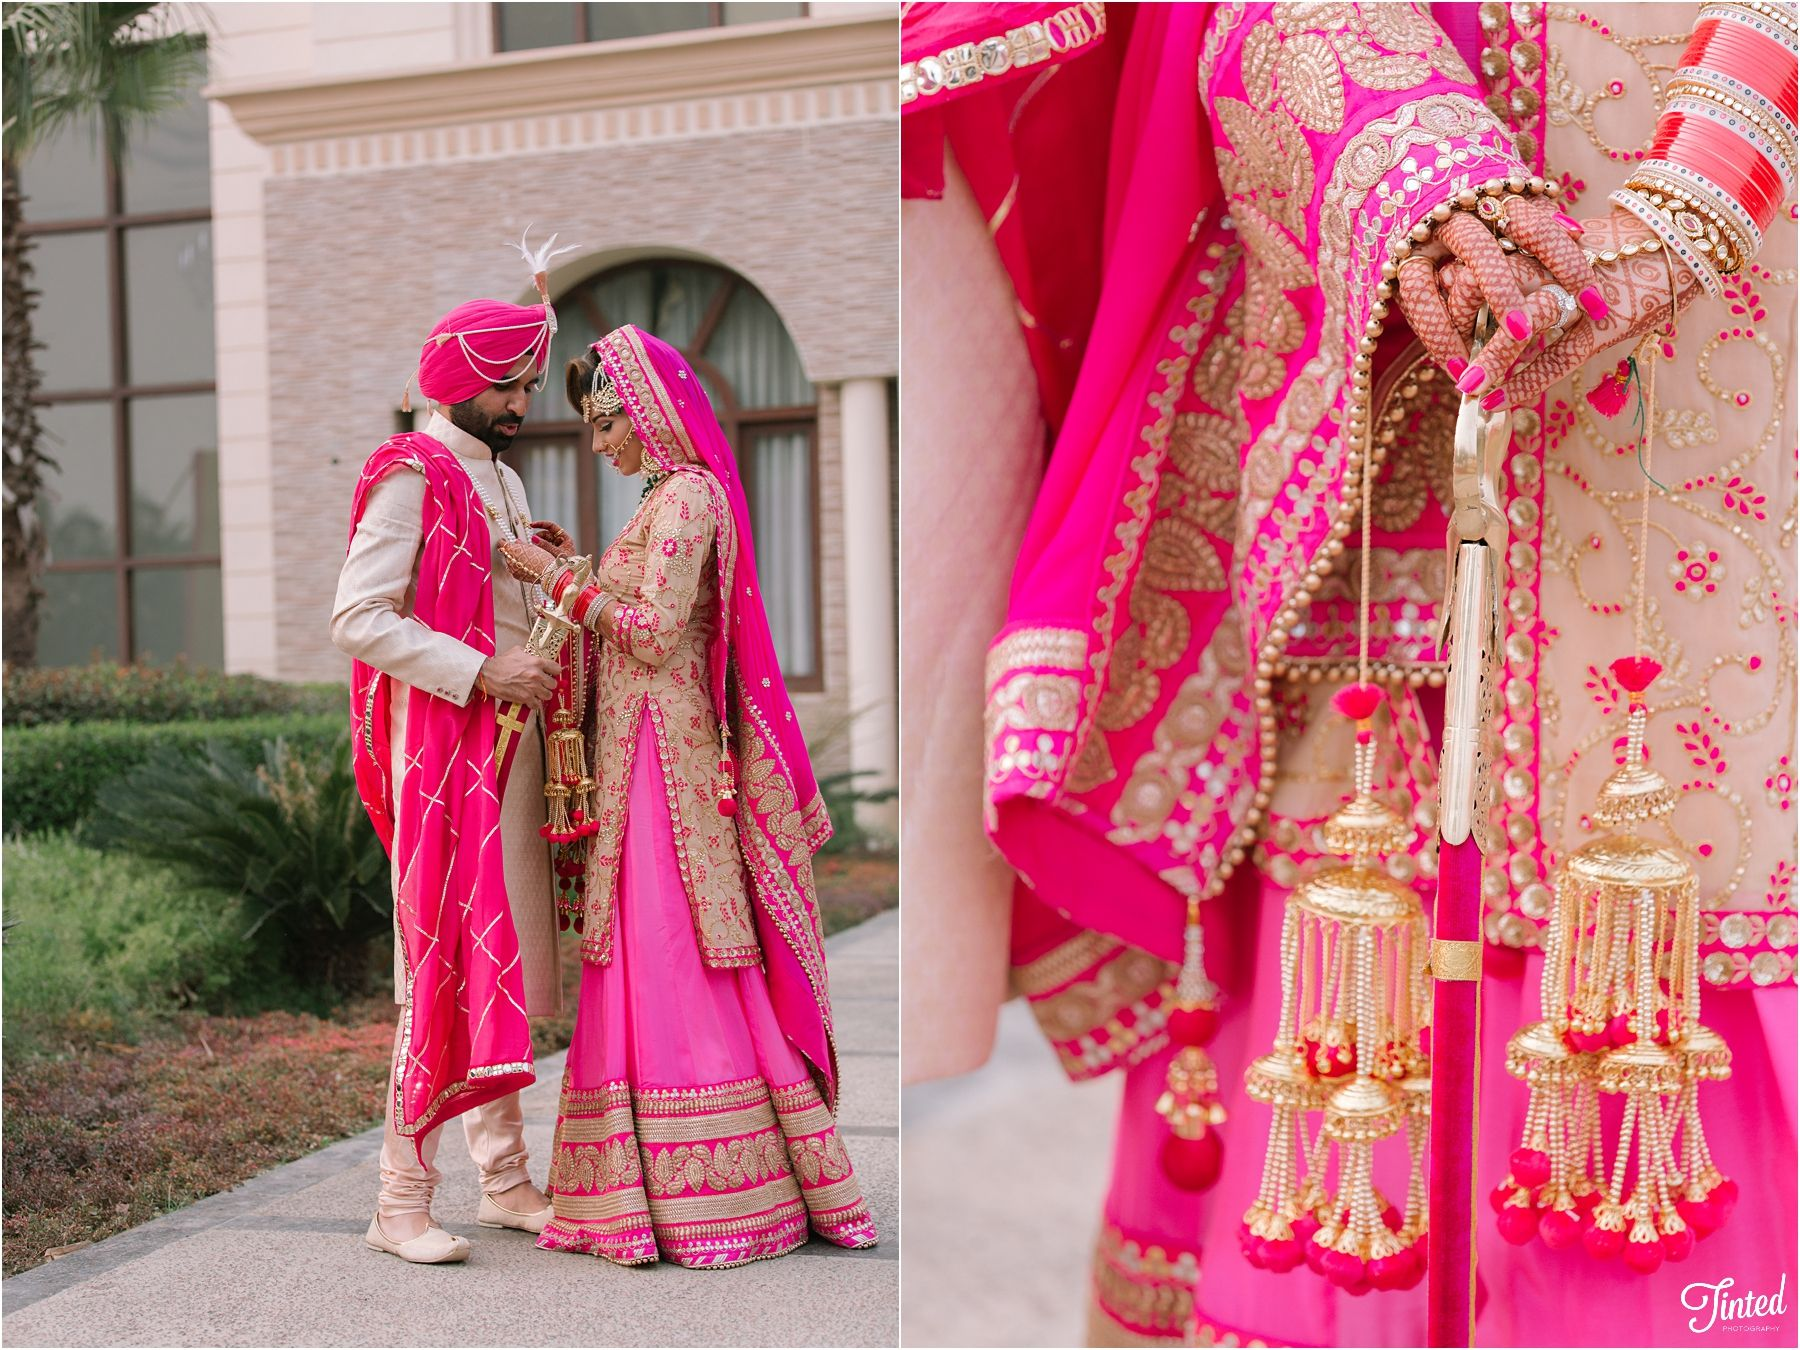 Punjabi wedding - India : Joban and Natasha | Lleno, Exótico y ...